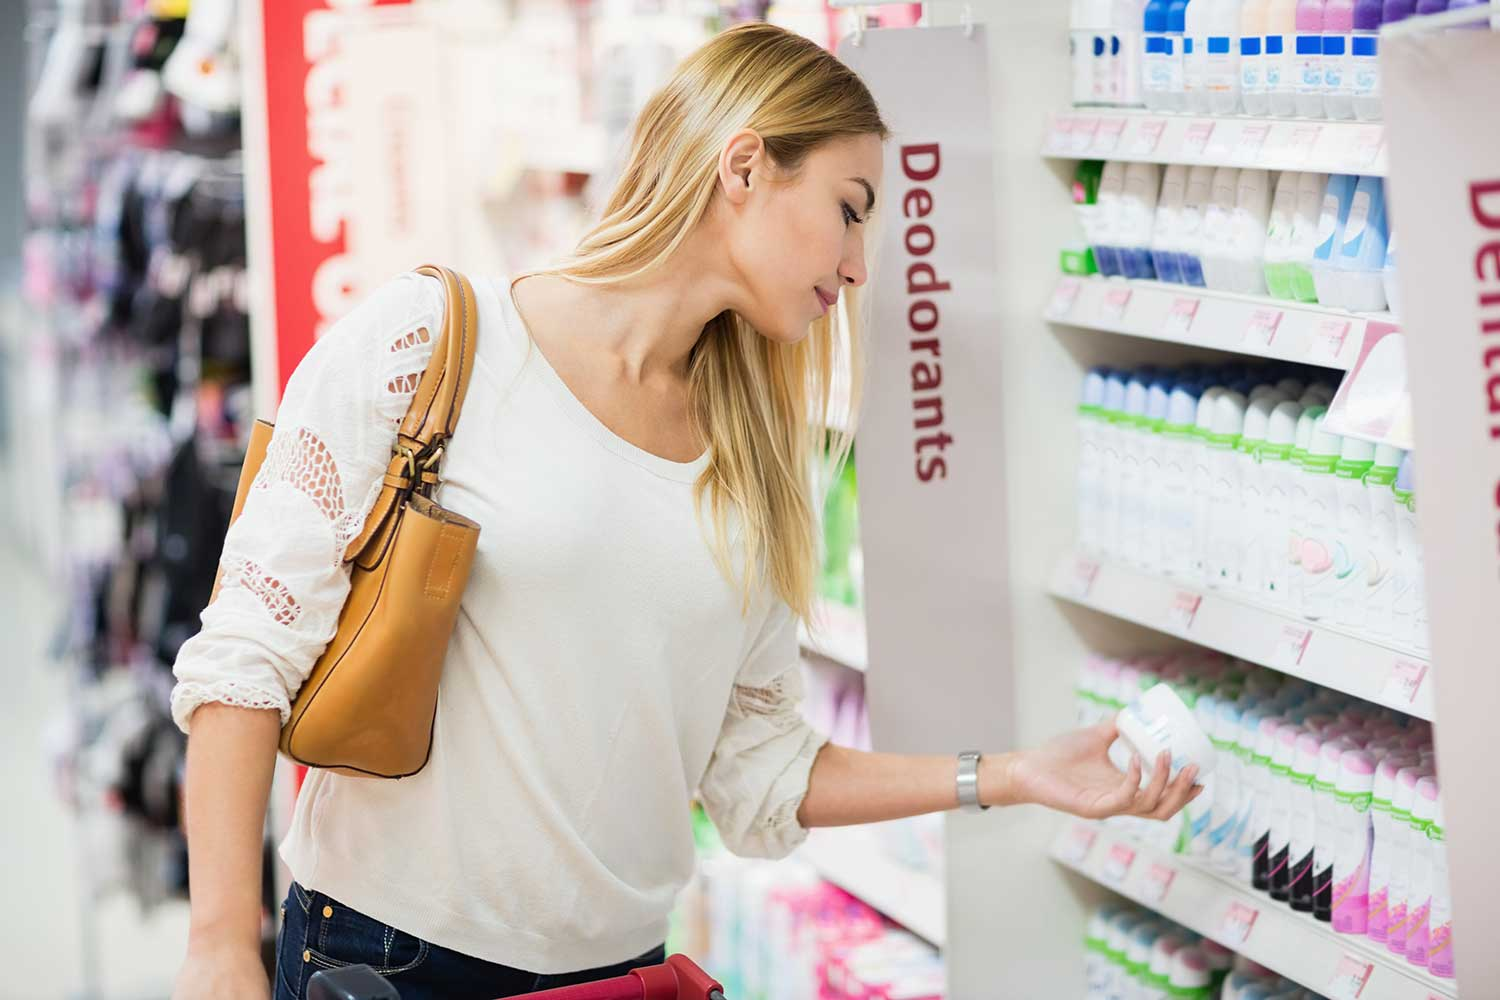 woman with long blonde hair shopping for deodorant